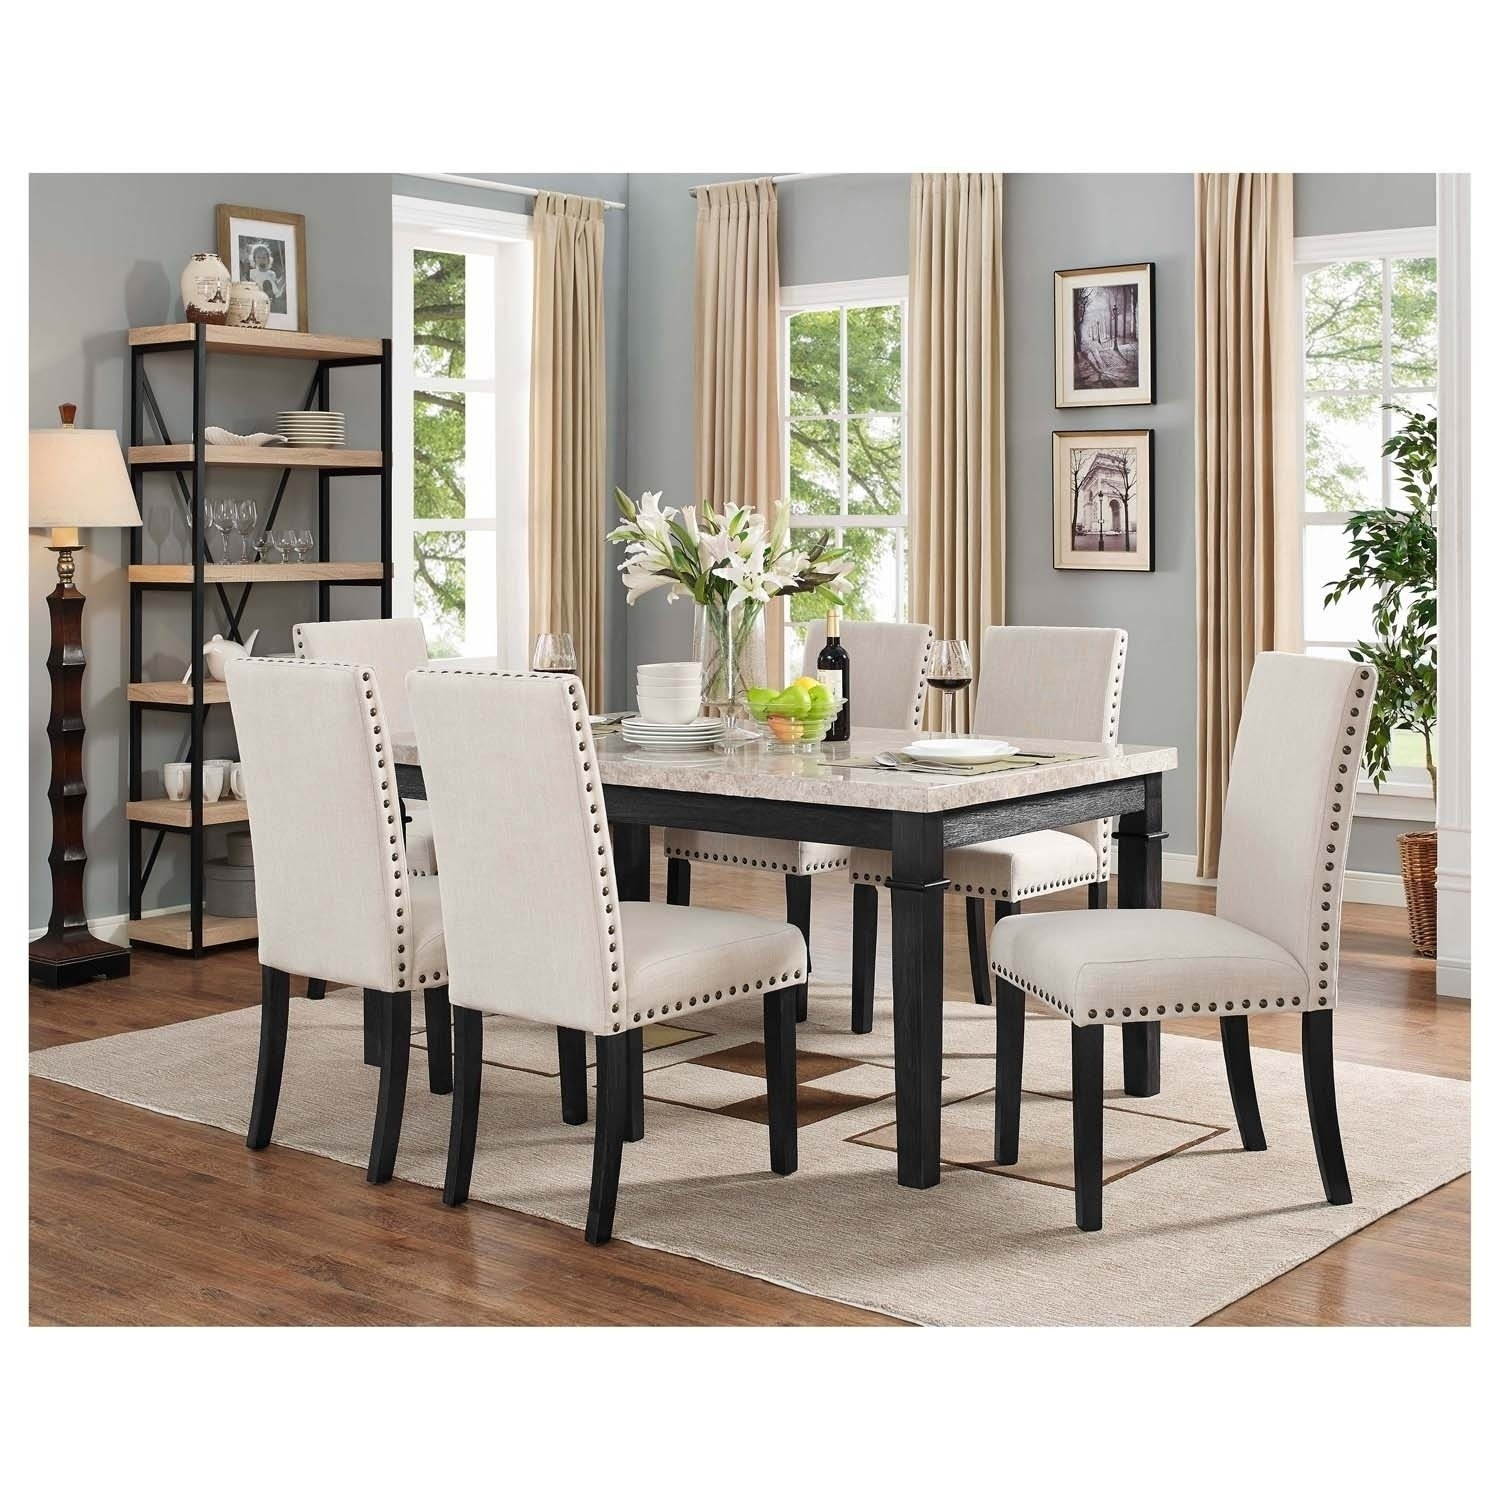 Shop Picket House Furnishings Bradley 7Pc Dining Set Table & 6 Intended For Most Up To Date Gavin 7 Piece Dining Sets With Clint Side Chairs (Image 18 of 20)